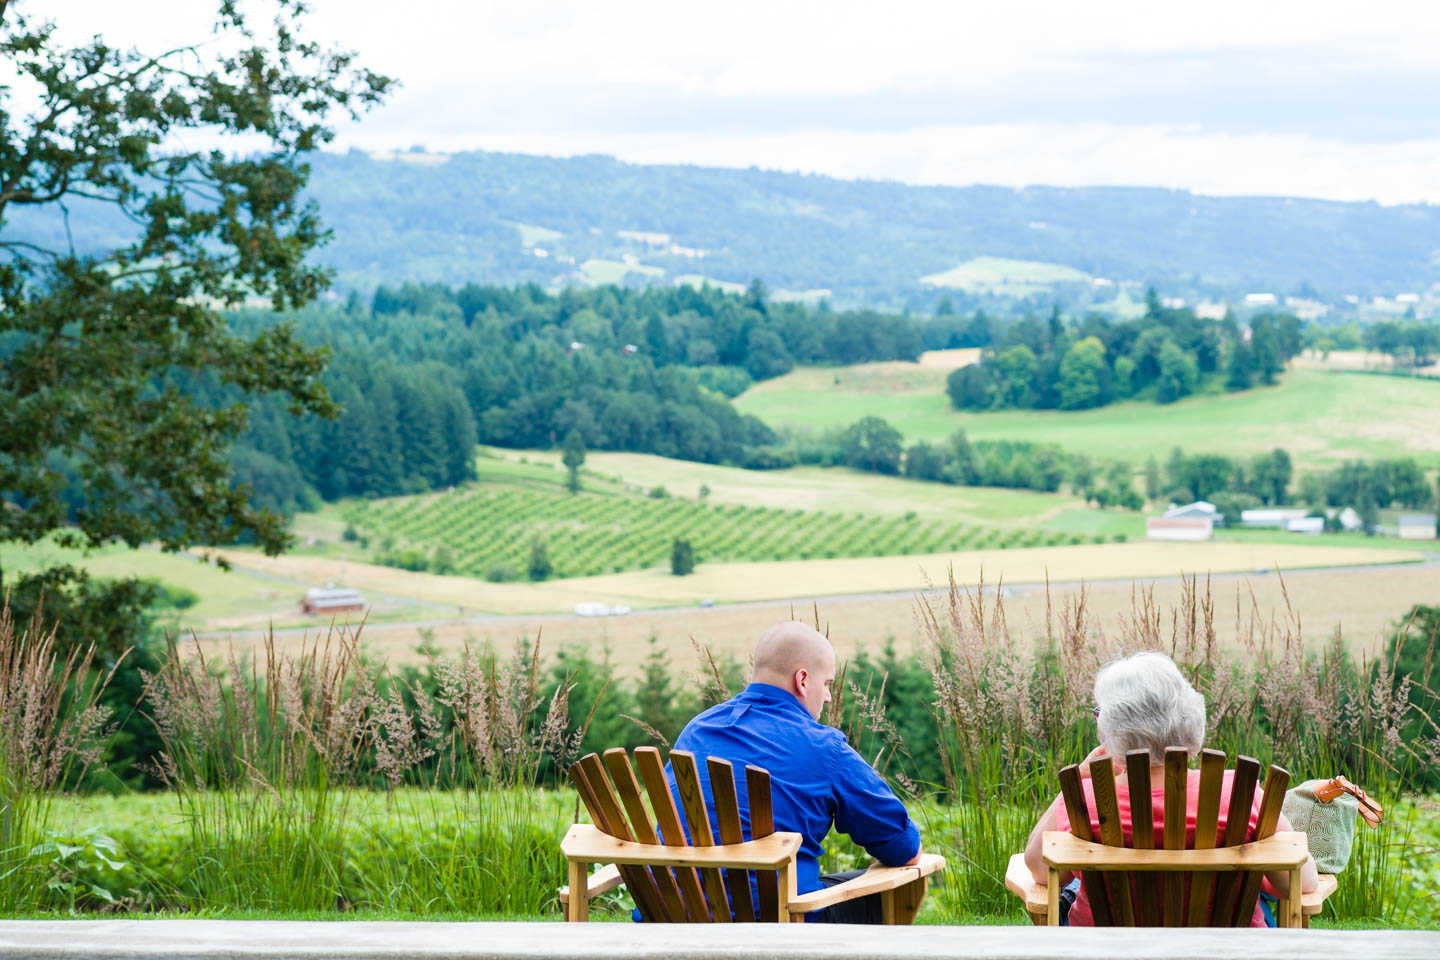 Folks enjoy the view of Oregon's wine country and vineyard at Penner Ash